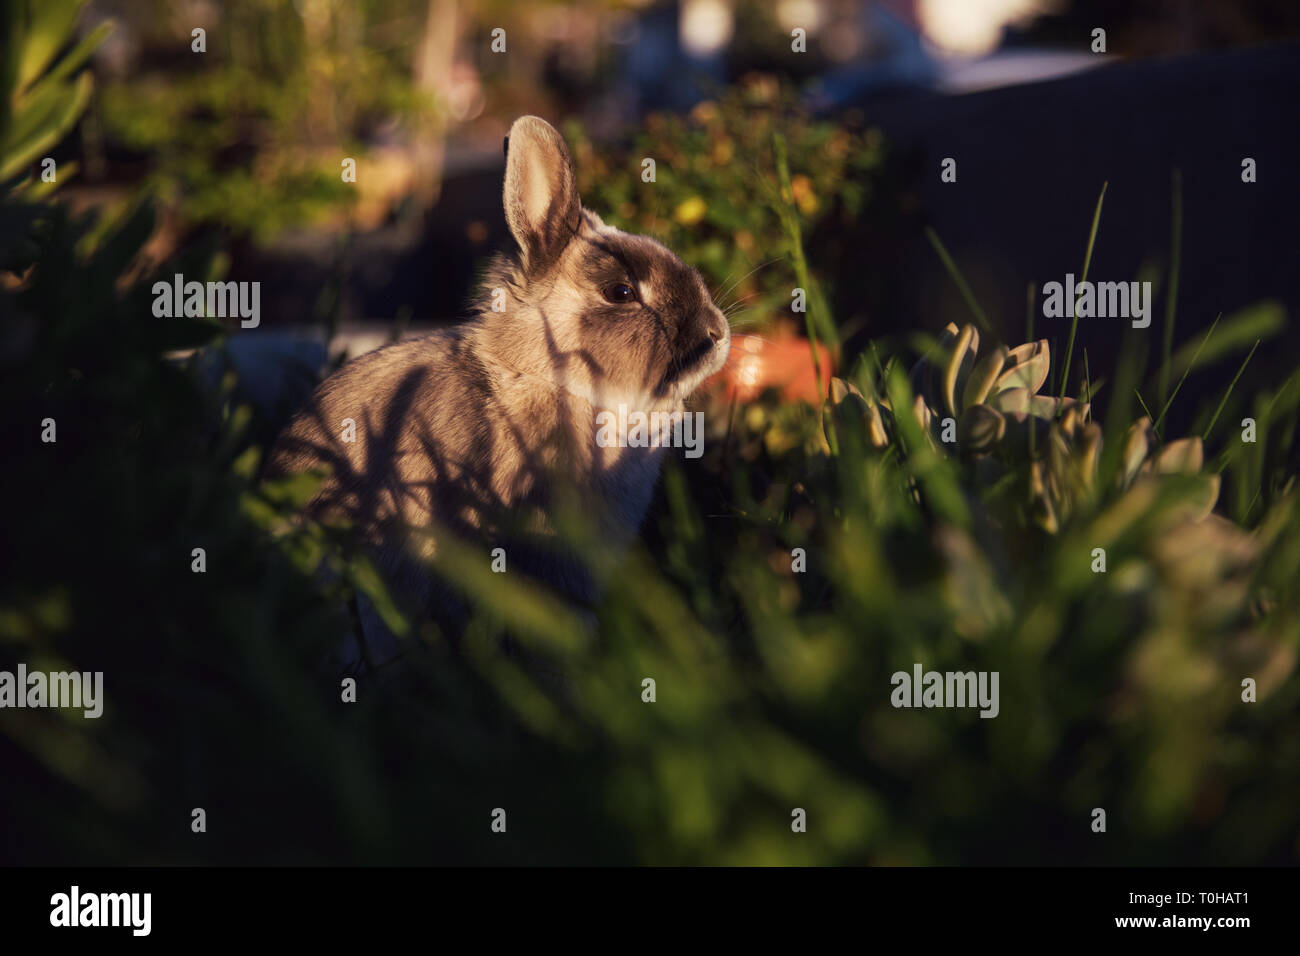 A moody portait of a dwarf bunny basking in the late afternoon sun in a grassy garden. Stock Photo